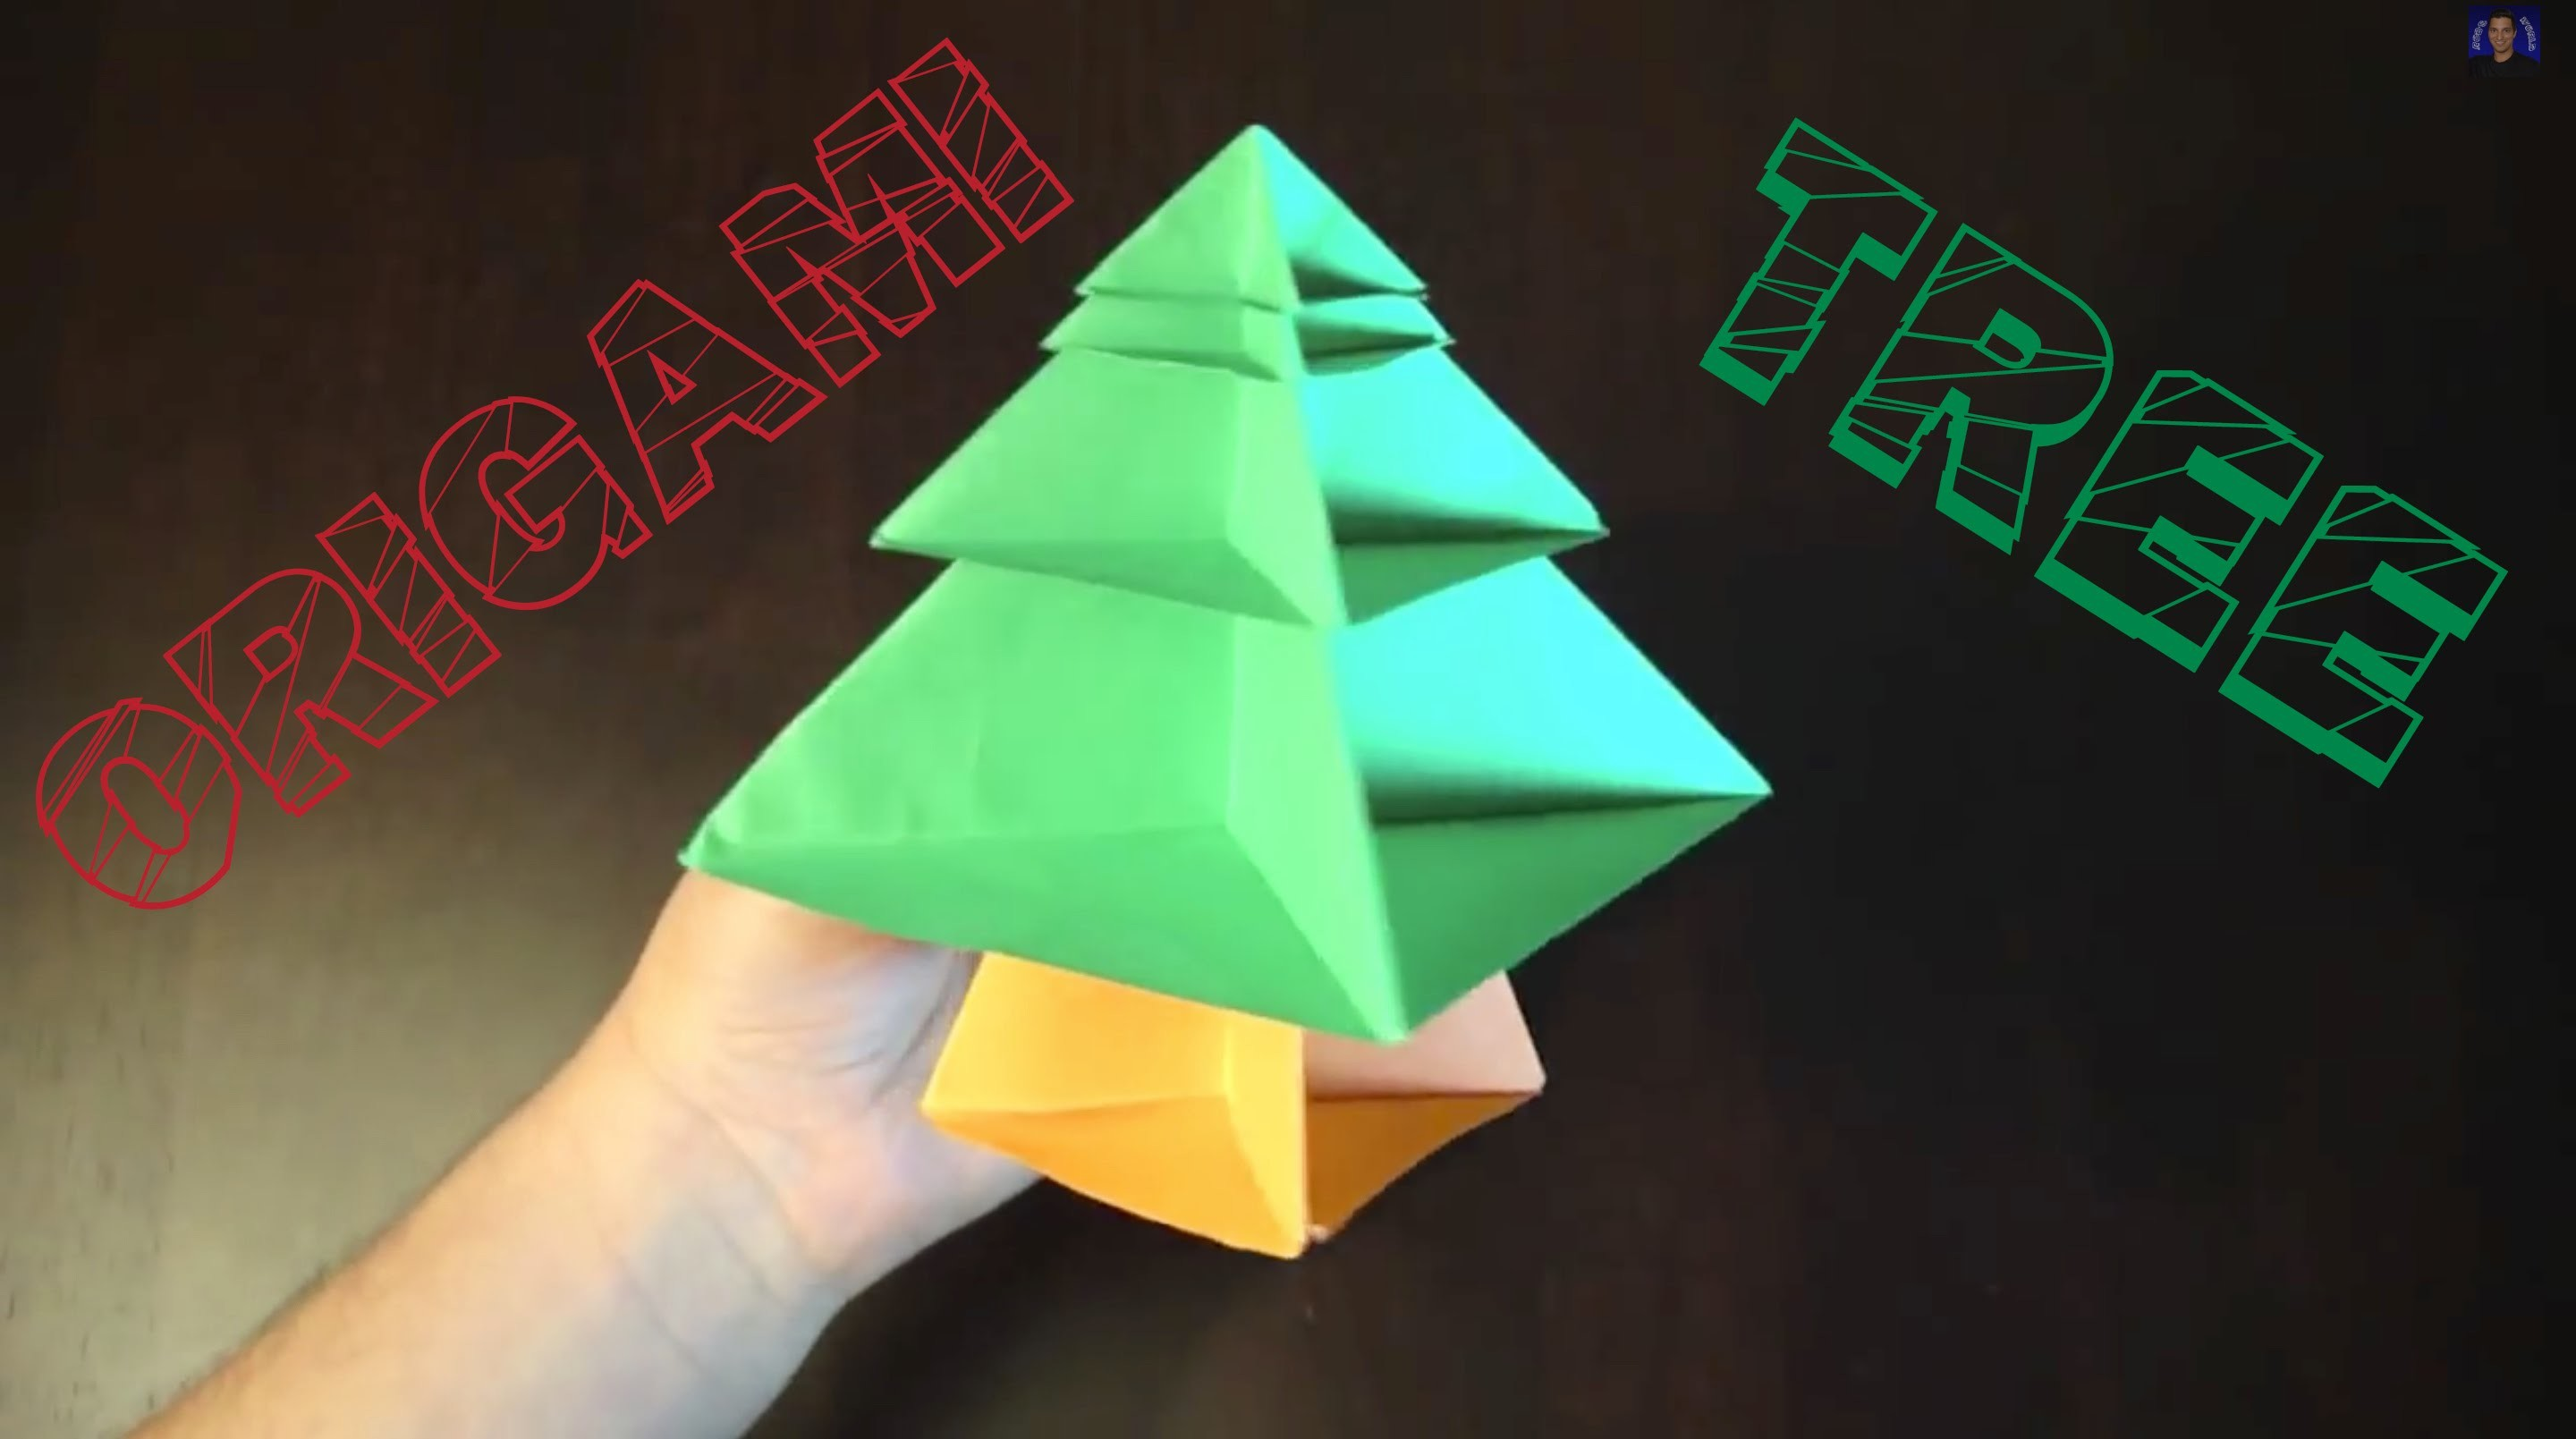 How to Make an Origami Christmas Tree (Modular)